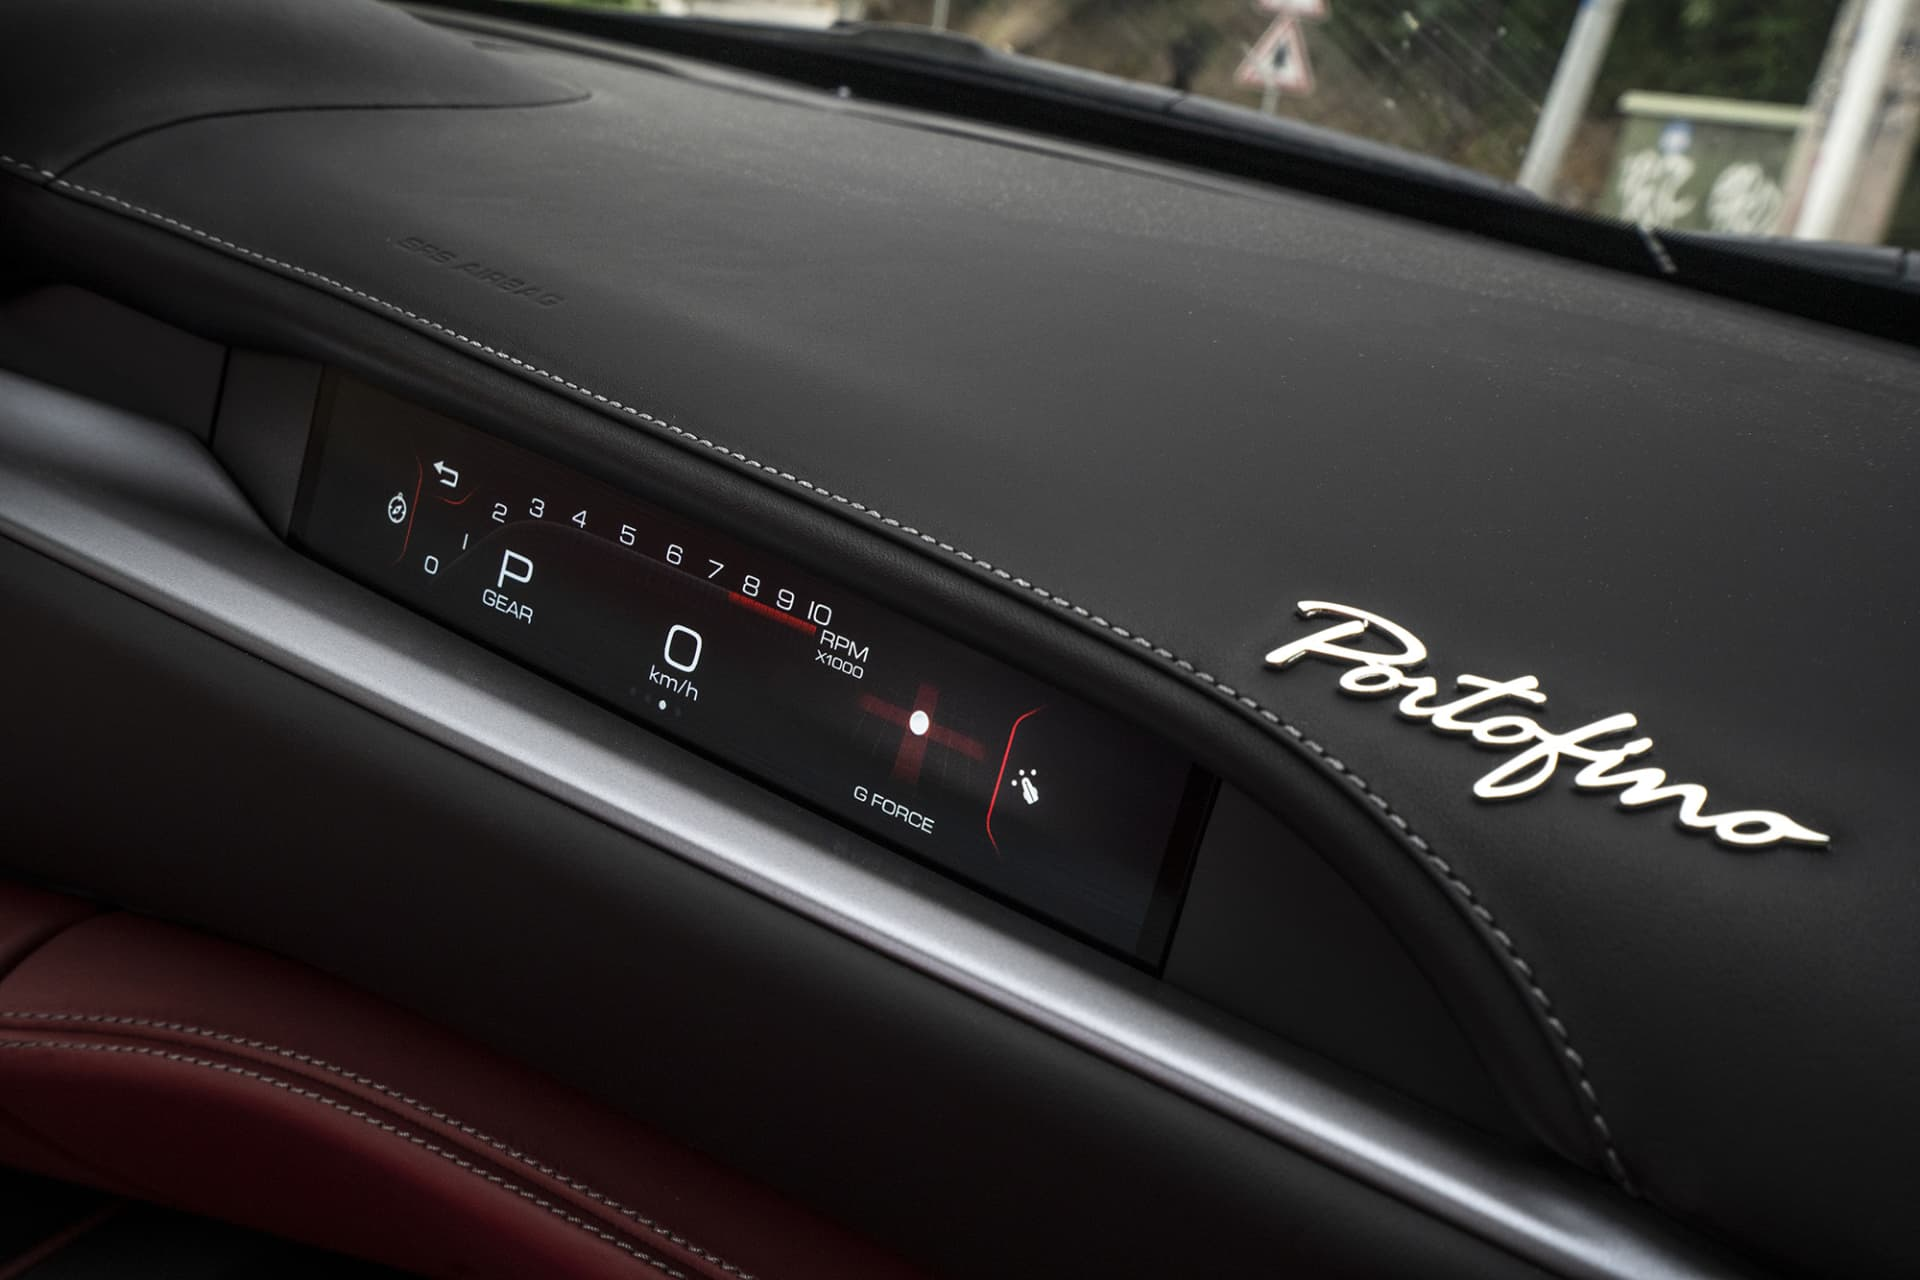 On the passenger side there is a screen where information like RPM, speed, g-forces and much else are presented to the passenger.